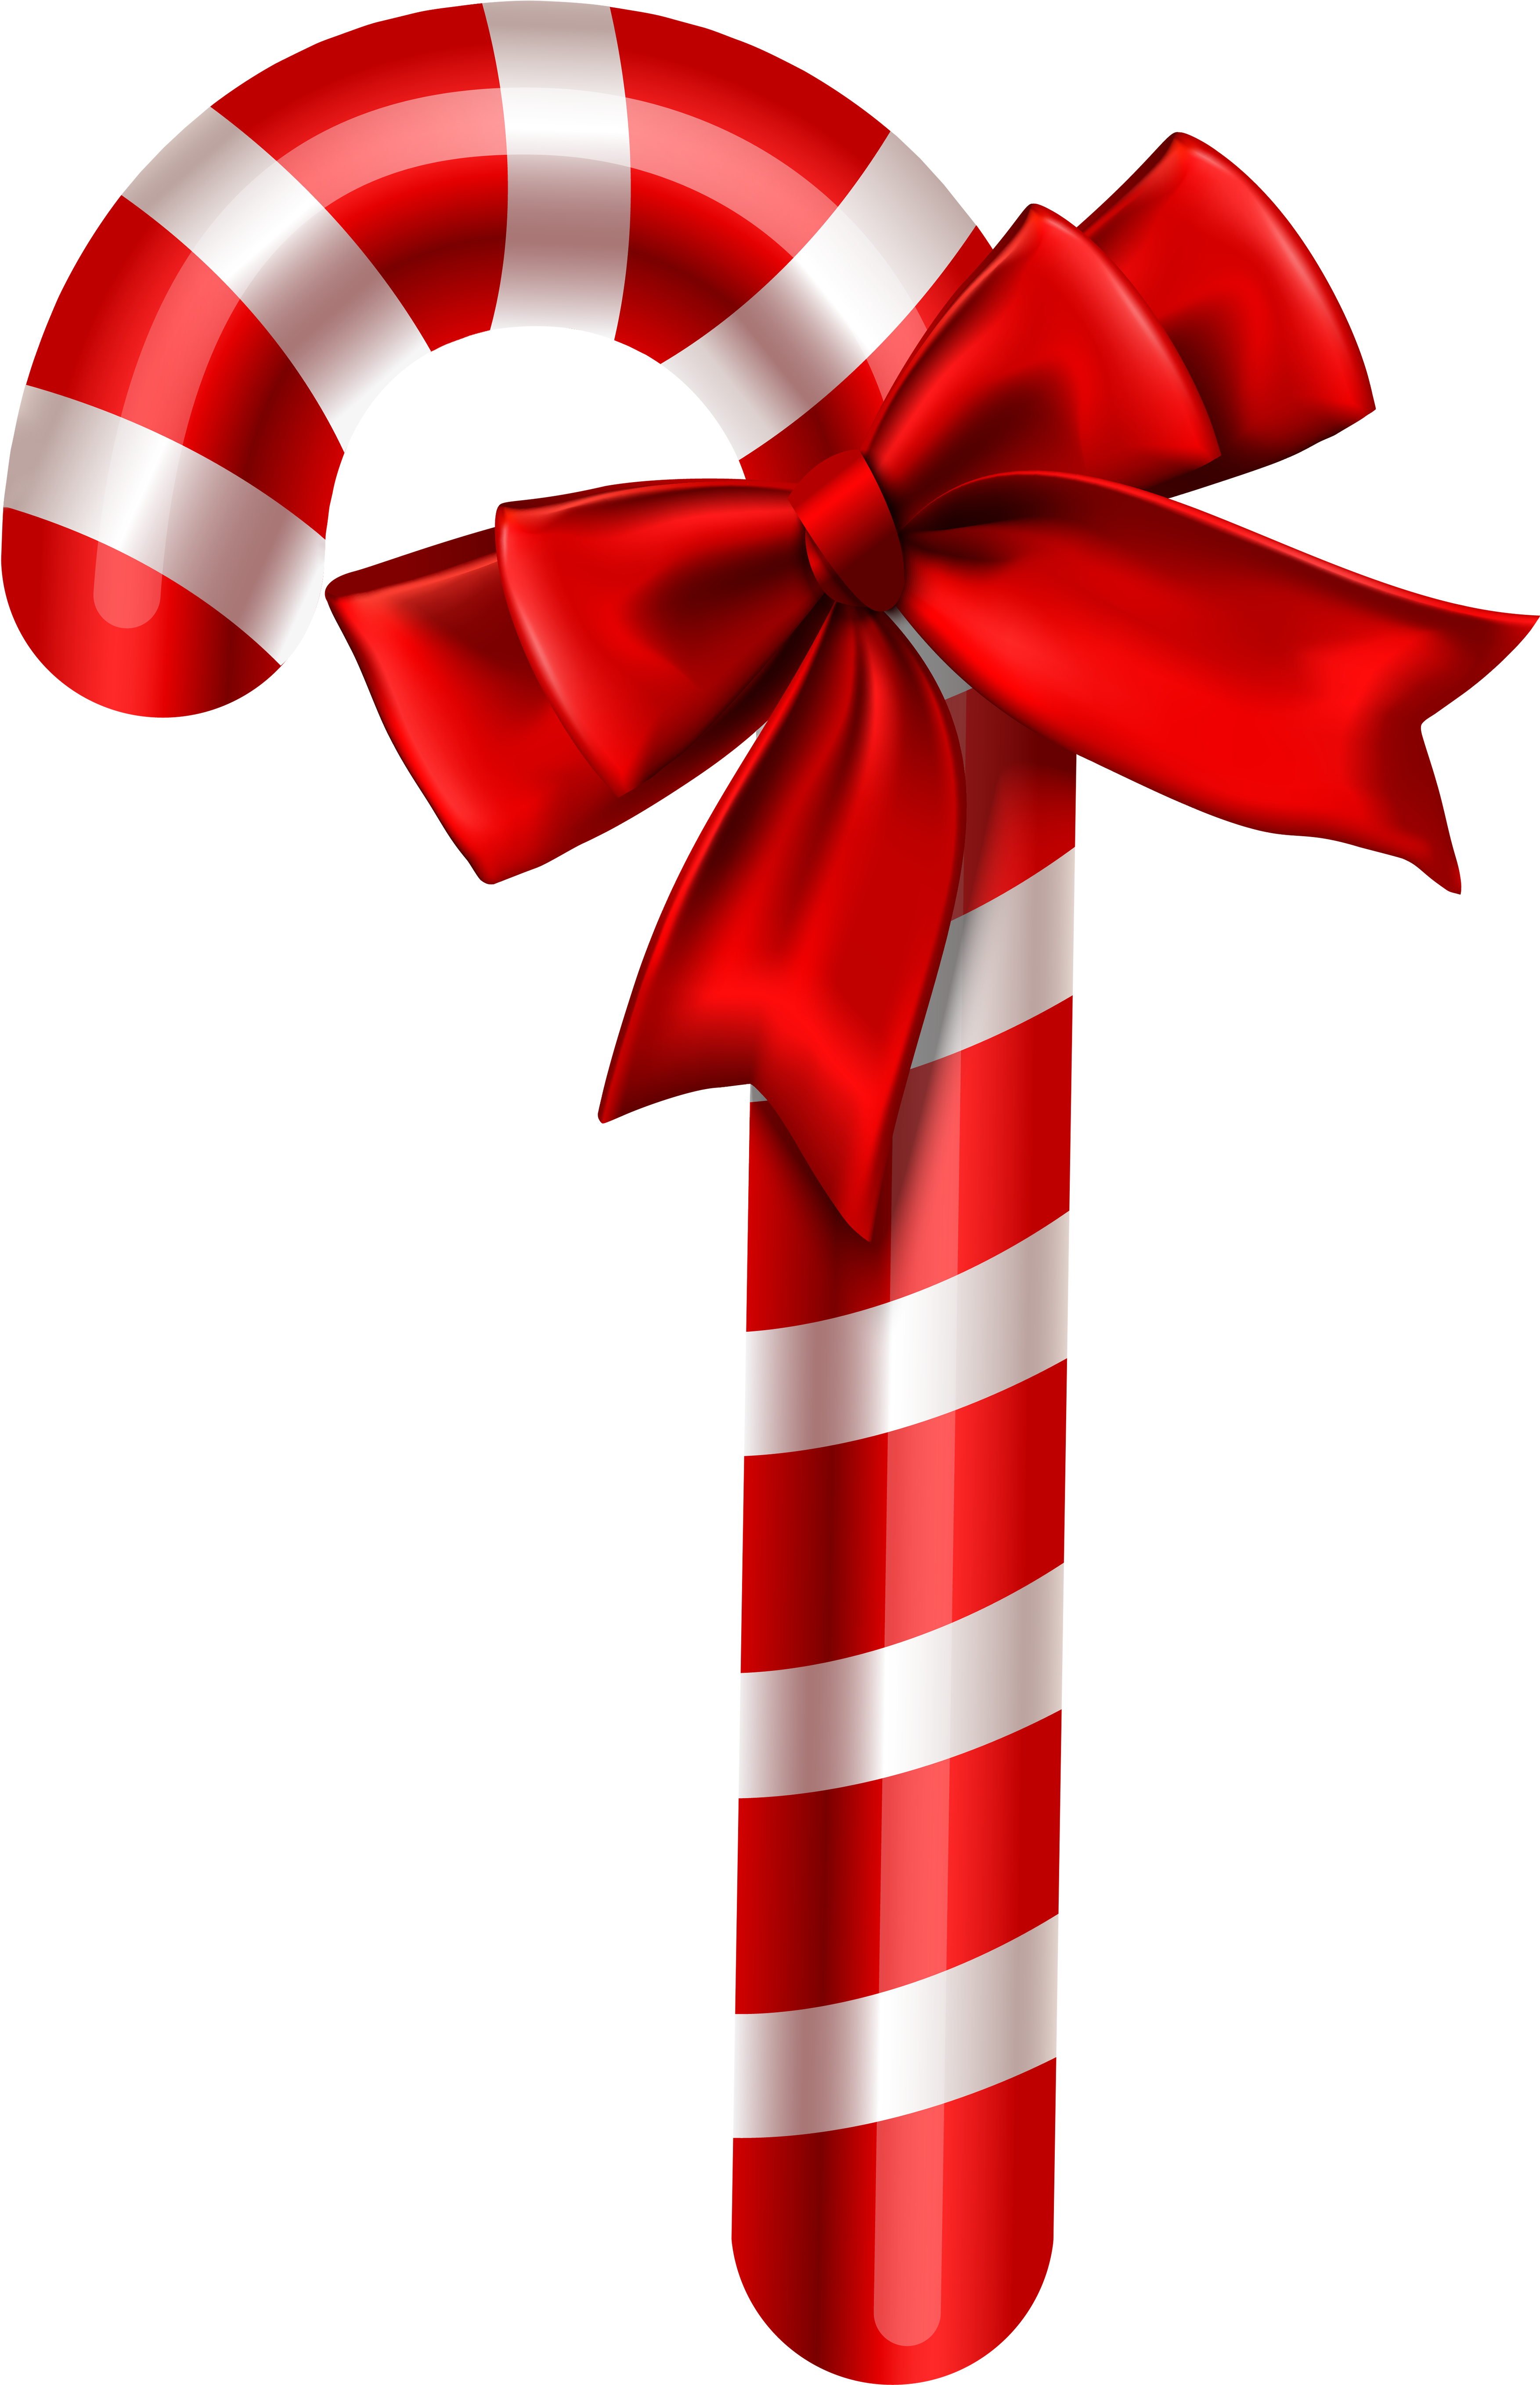 Printable Candy Cane | Free download on ClipArtMag